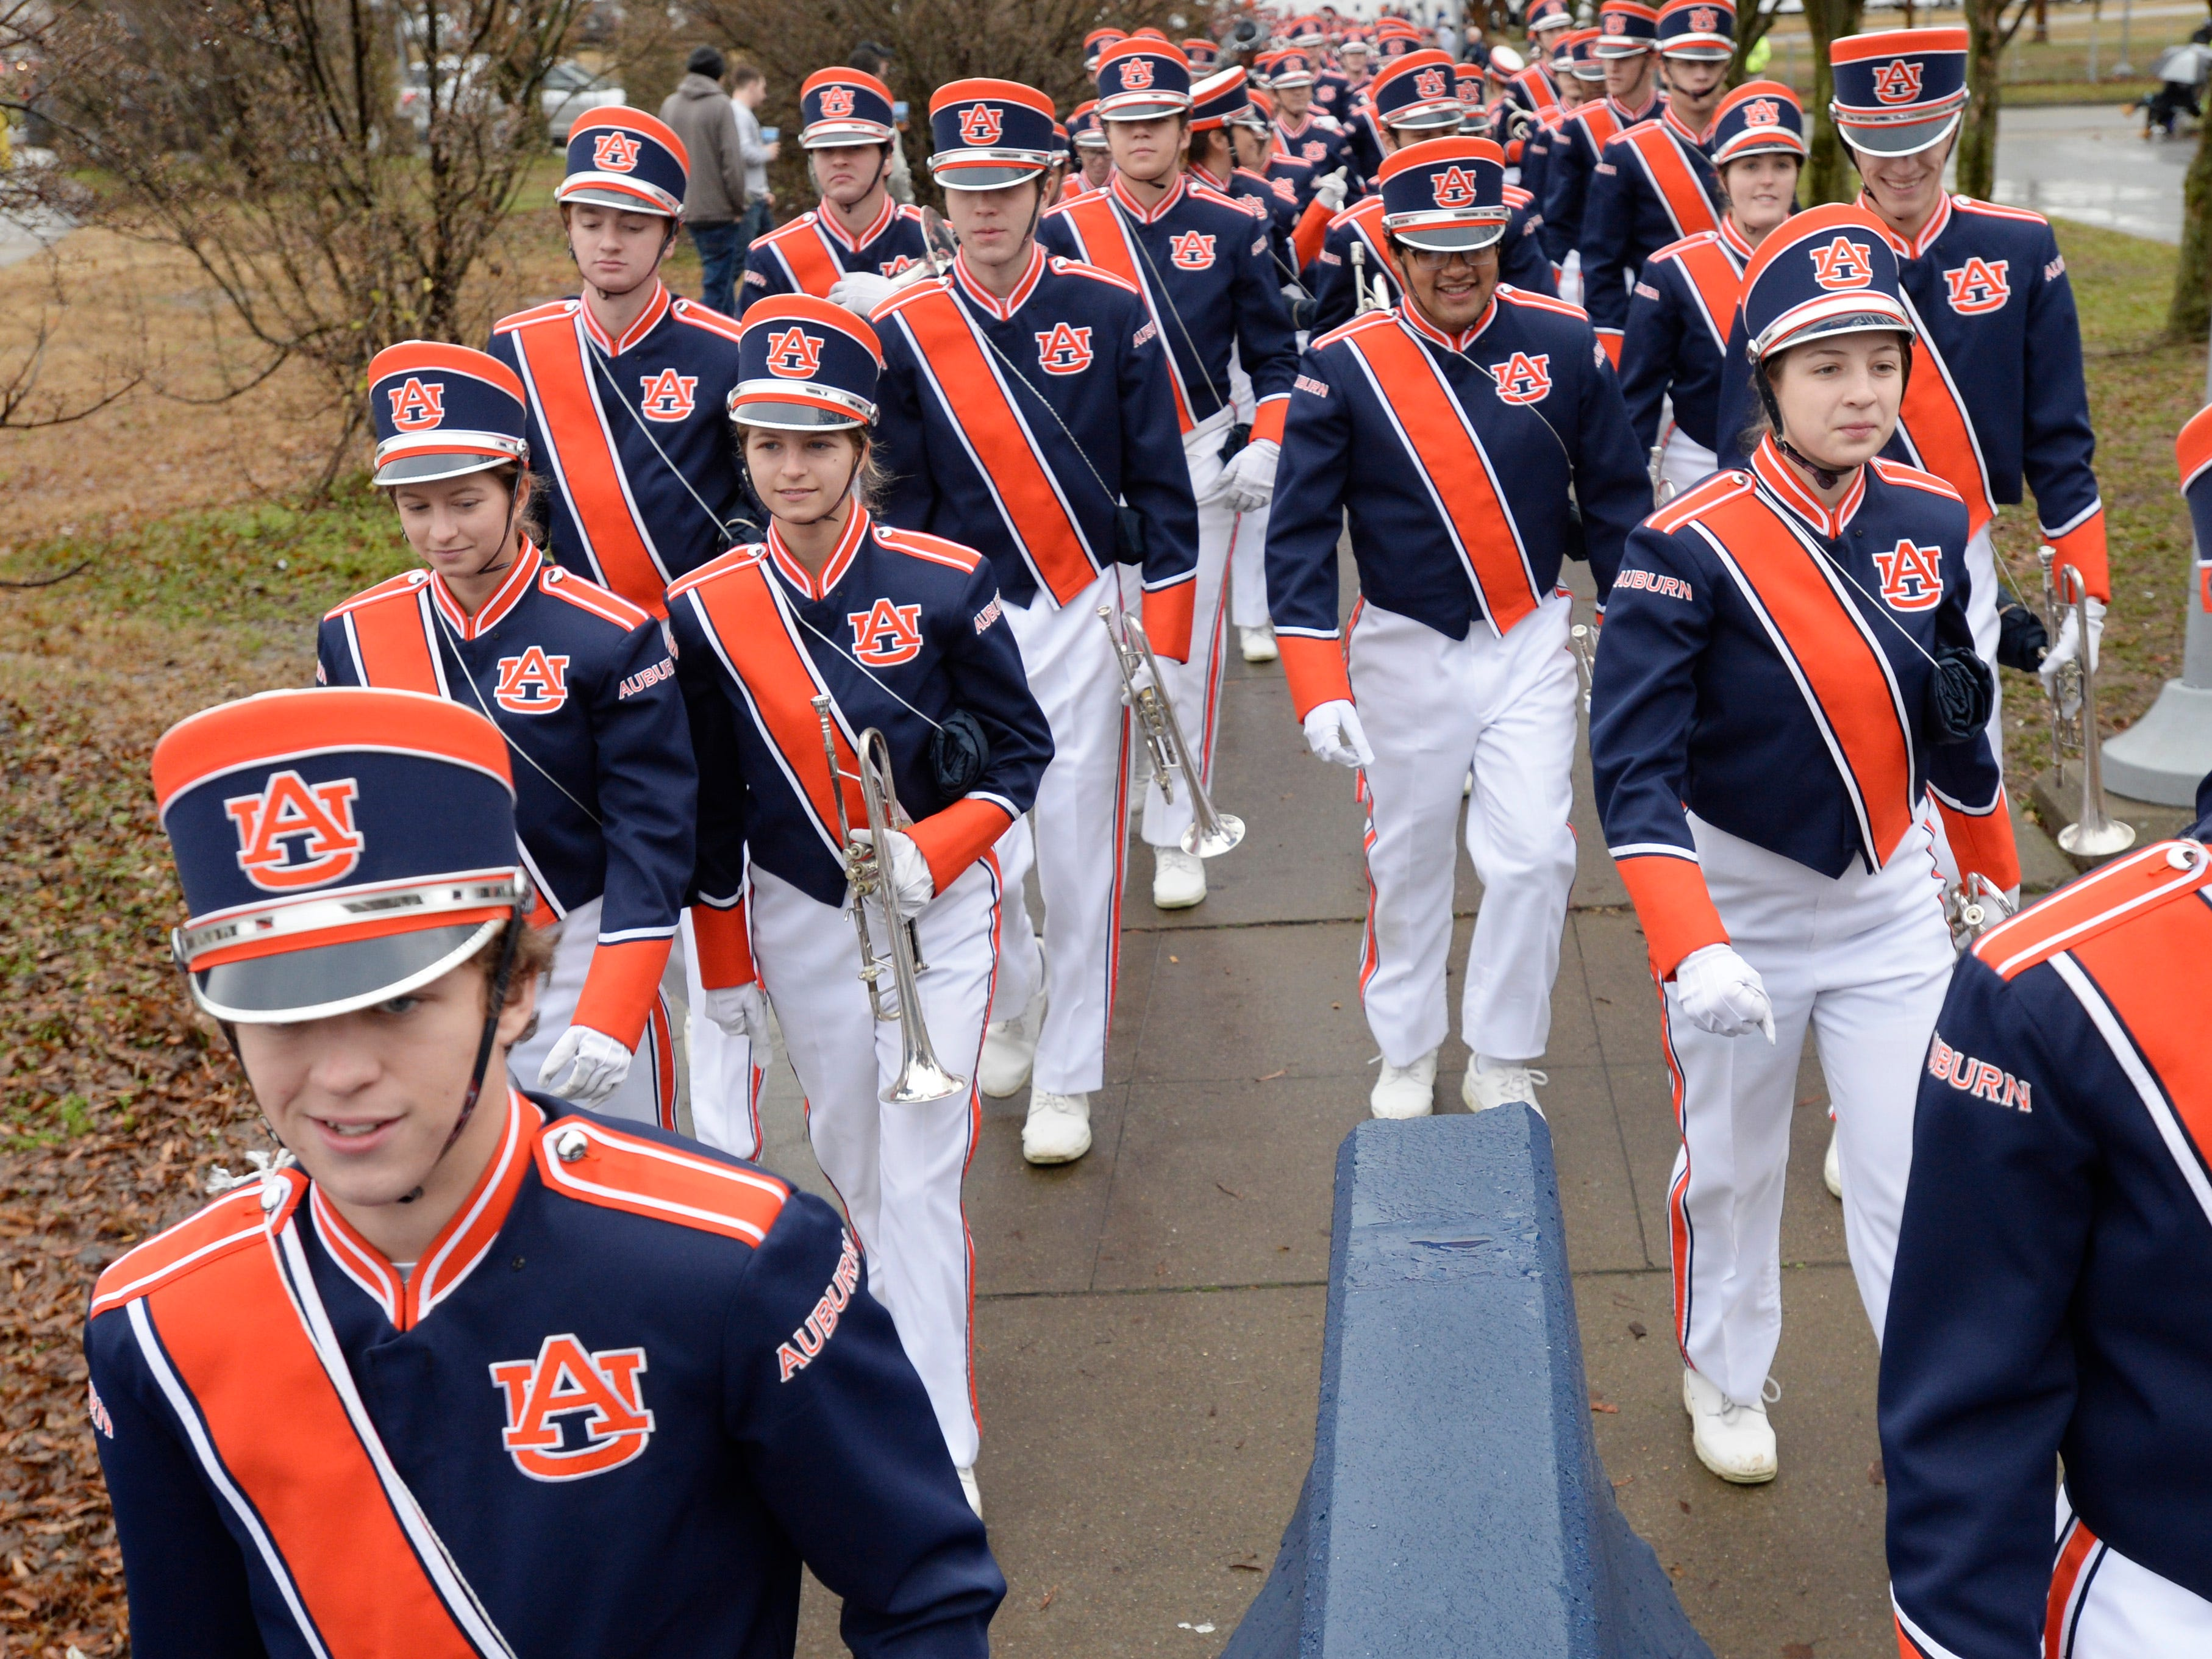 Auburn band members arrive for the Music City Bowl NCAA college football game Friday, Dec. 28, 2018, at Nissan Stadium in Nashville, Tenn.